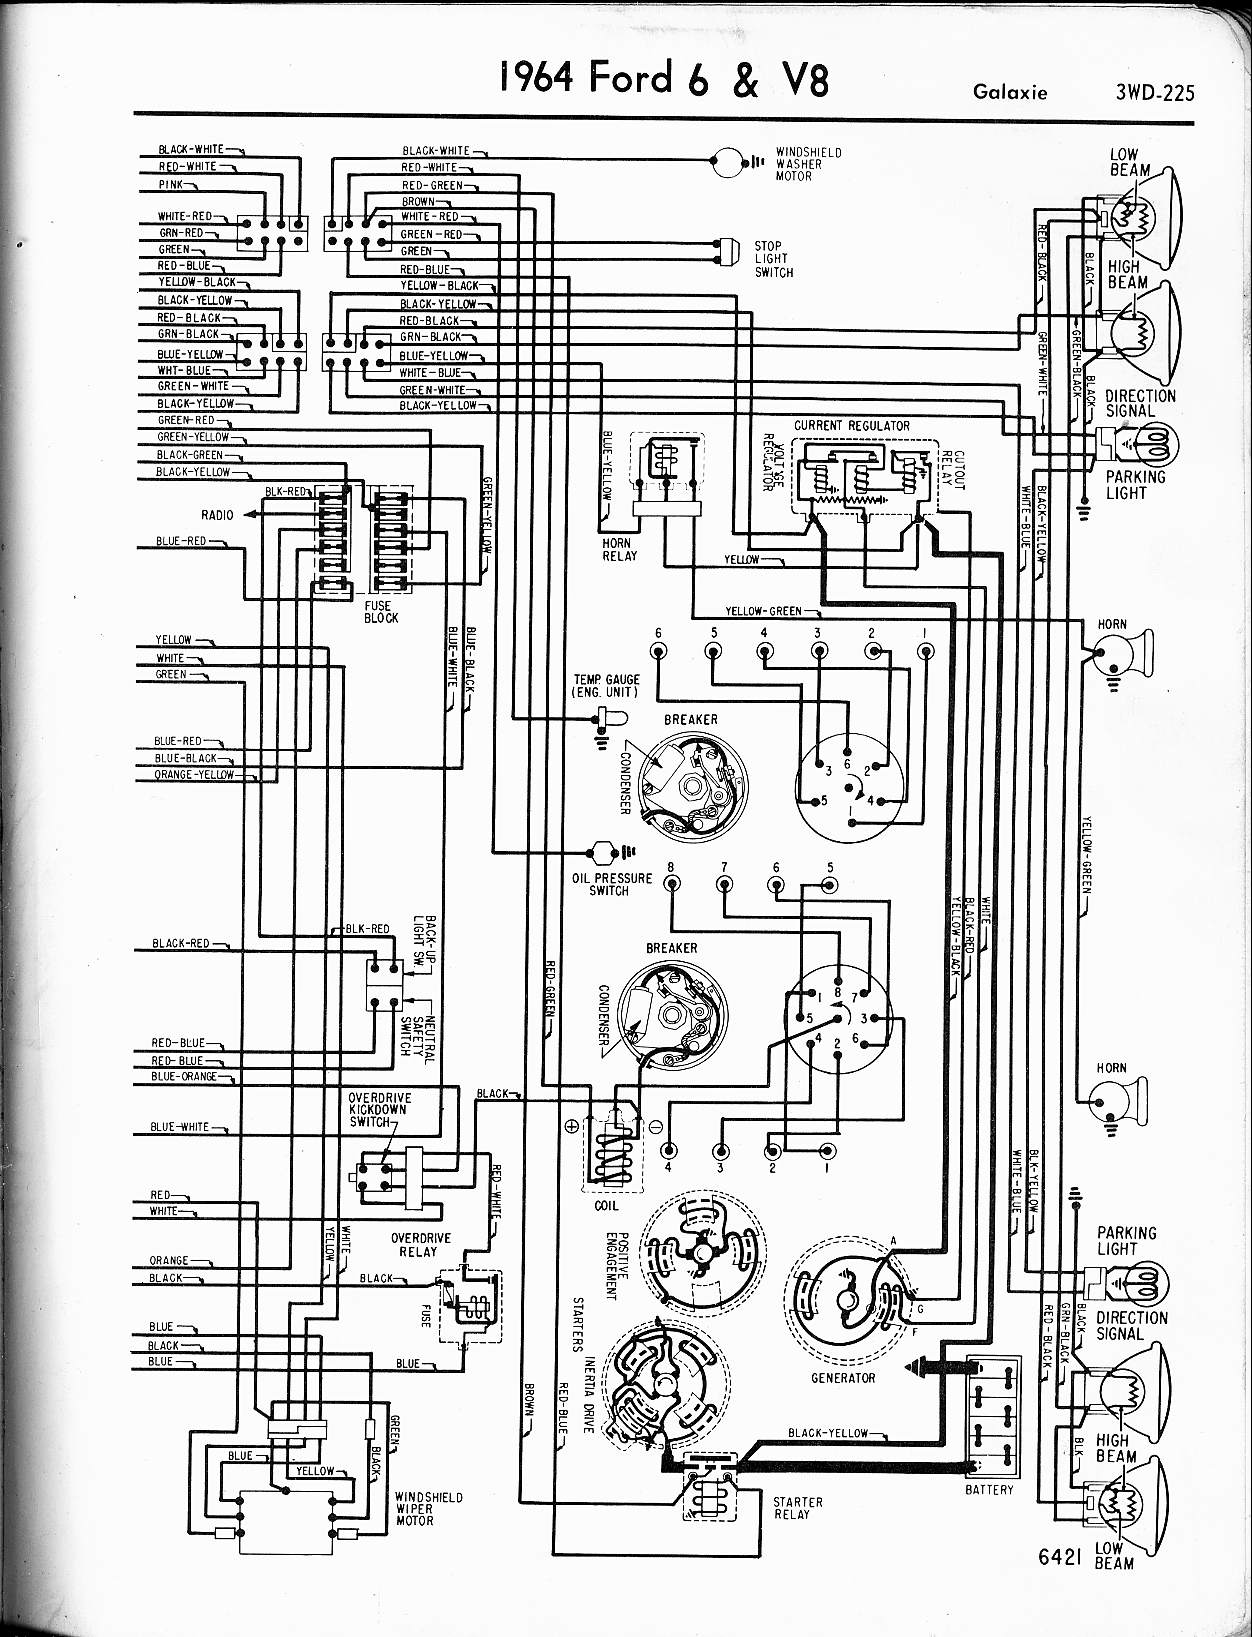 2013 Ford Transit Connect Wiper Wiring Diagram | Wiring Diagram  Ford Transit Wiring Diagram on ford f-series wiring diagram, ford econoline van wiring diagram, ford transit suspension diagram, ford transit tires, ford transit brochure, ford transit door switch connections, 1937 ford wiring diagram, ford expedition wiring-diagram, ford transit spec sheet, ford 4x4 wiring diagram, ford transit drive shaft, ford f350 super duty wiring diagram, ford fairlane wiring diagram, ford flex wiring diagram, ford think wiring diagram, ford aerostar wiring diagram, ford granada wiring diagram, ford transit oil filter, basic ford solenoid wiring diagram, ford thunderbird wiring diagram,